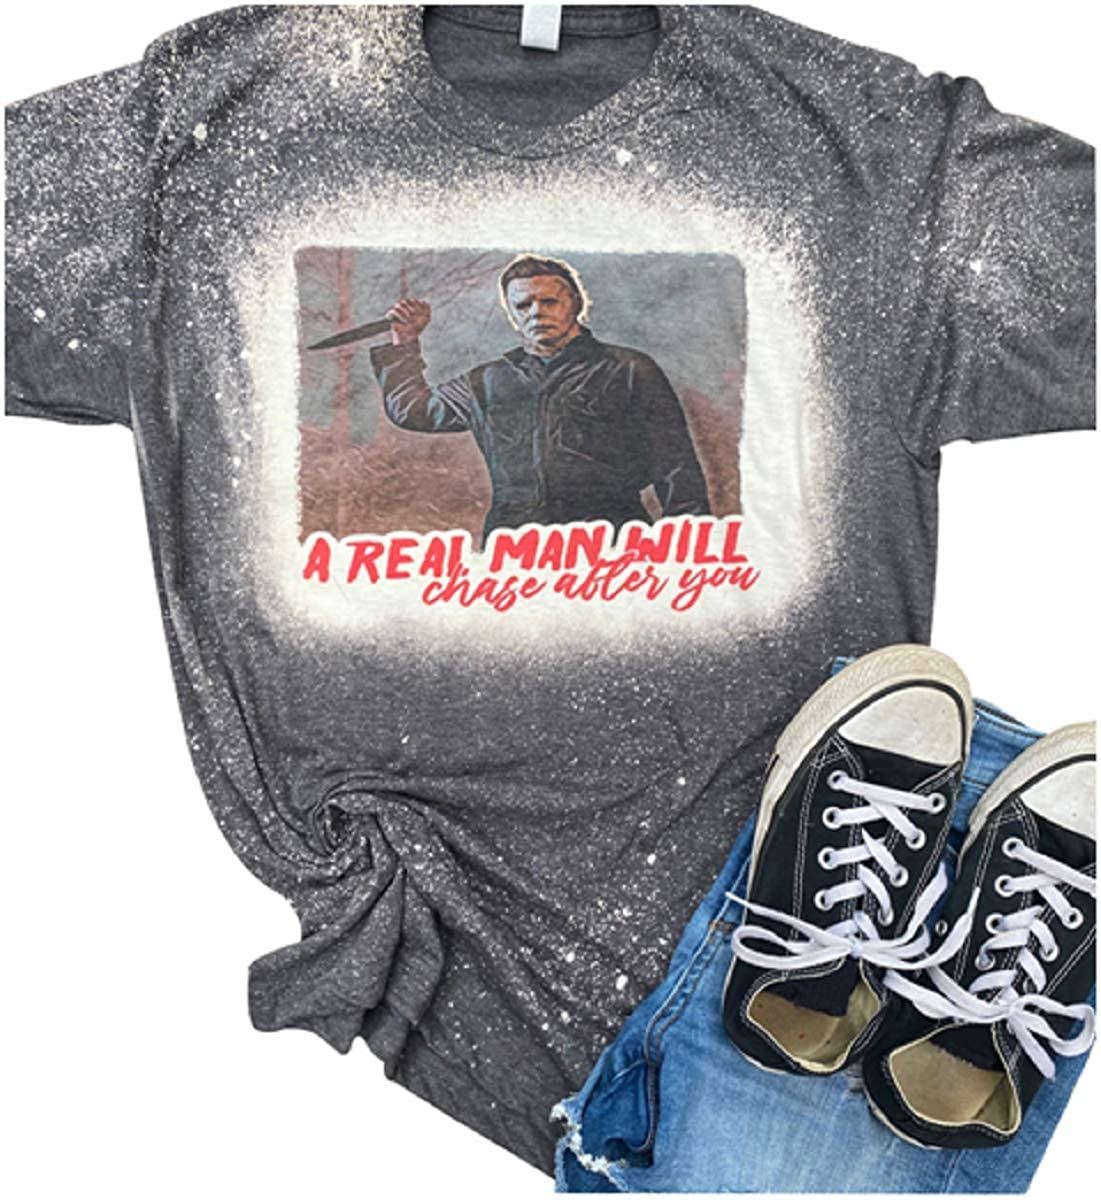 A Real Man Will Chase After You Michael Myers Shirt Women Cute Horror Movie Character Tie Dye Graphic Tops Halloween Blouse